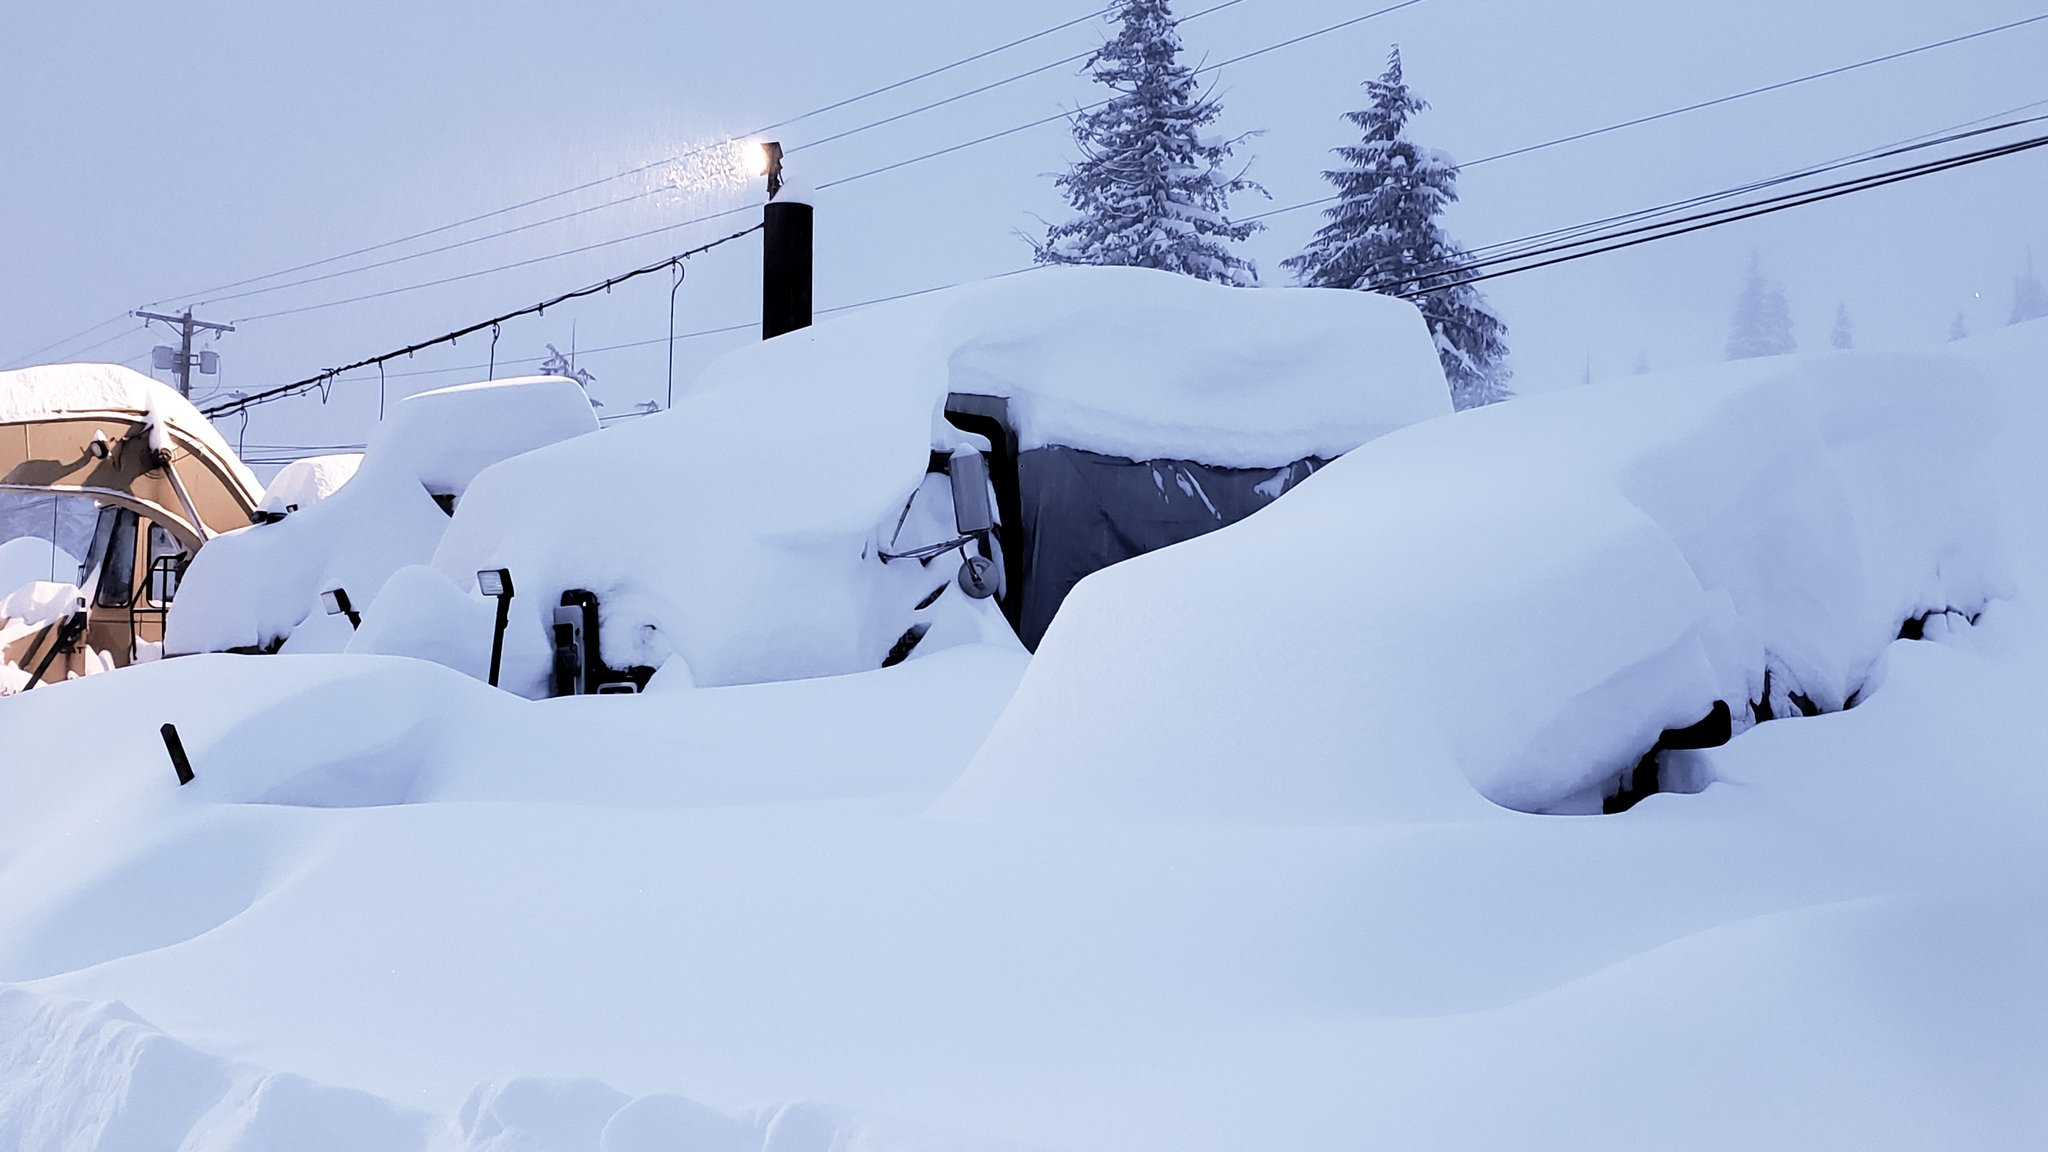 "53"" of snow falls at Snoqualmie Pass in just 2 days! (Photo: Summit Snoqualmie Ski Resort / @SummitSnow411)"